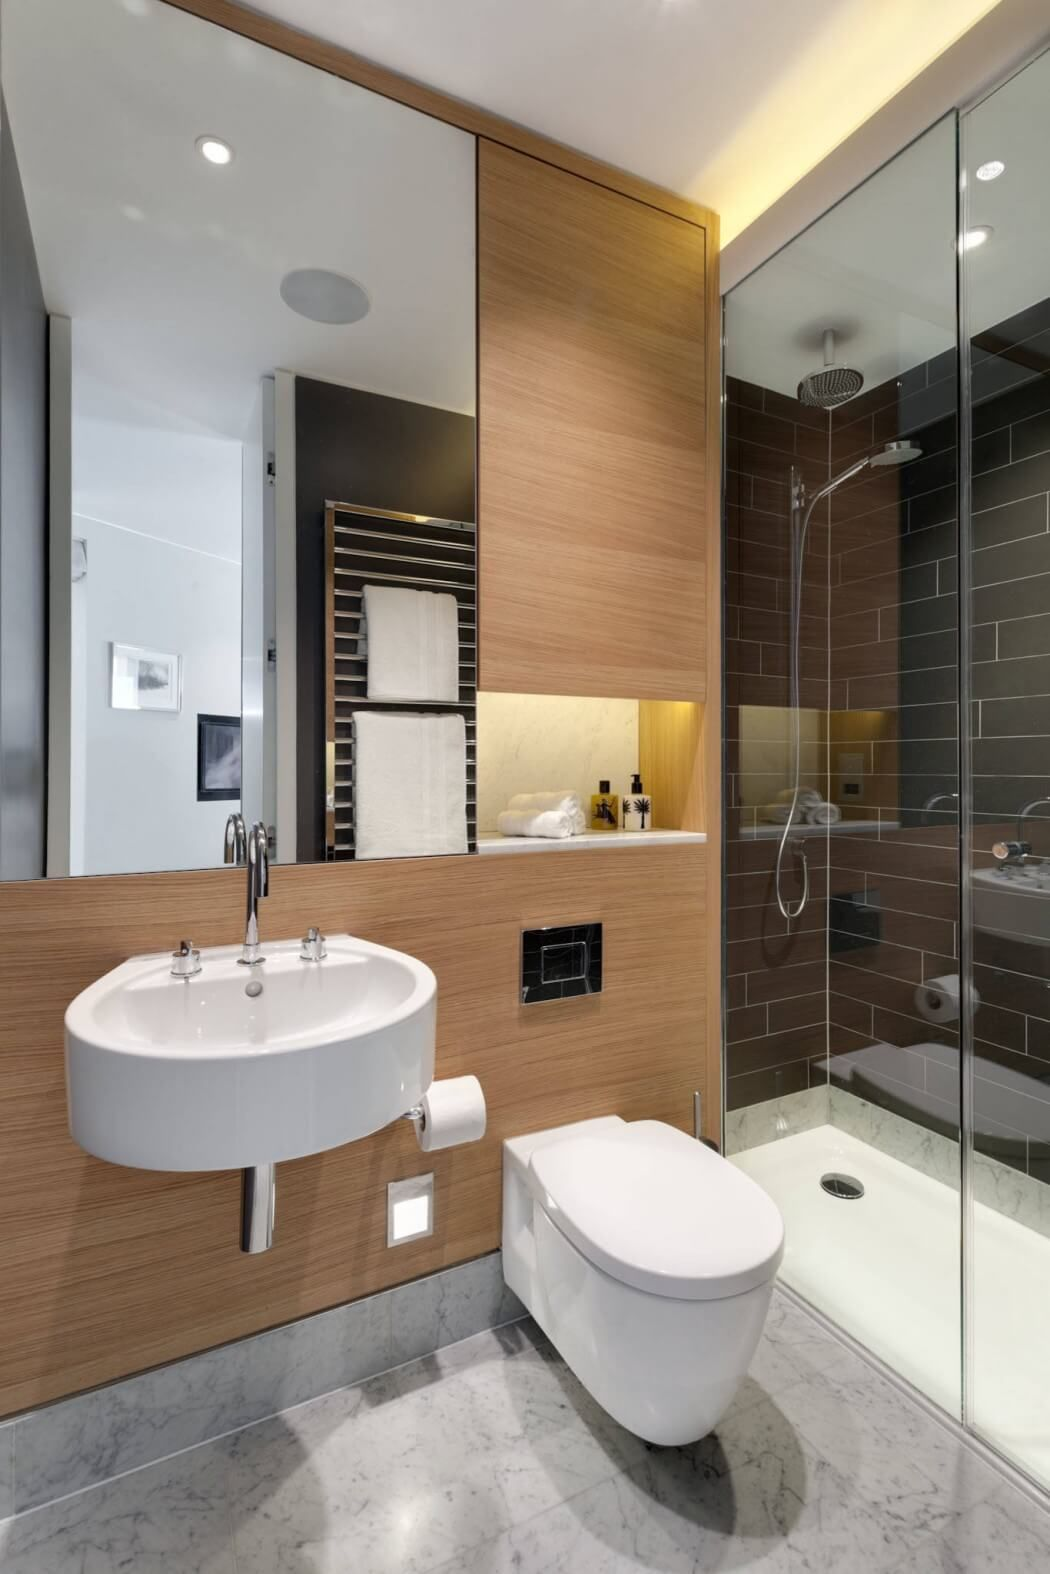 Wall Hung Sink And Toilet With Glass Shower Screen Keeps